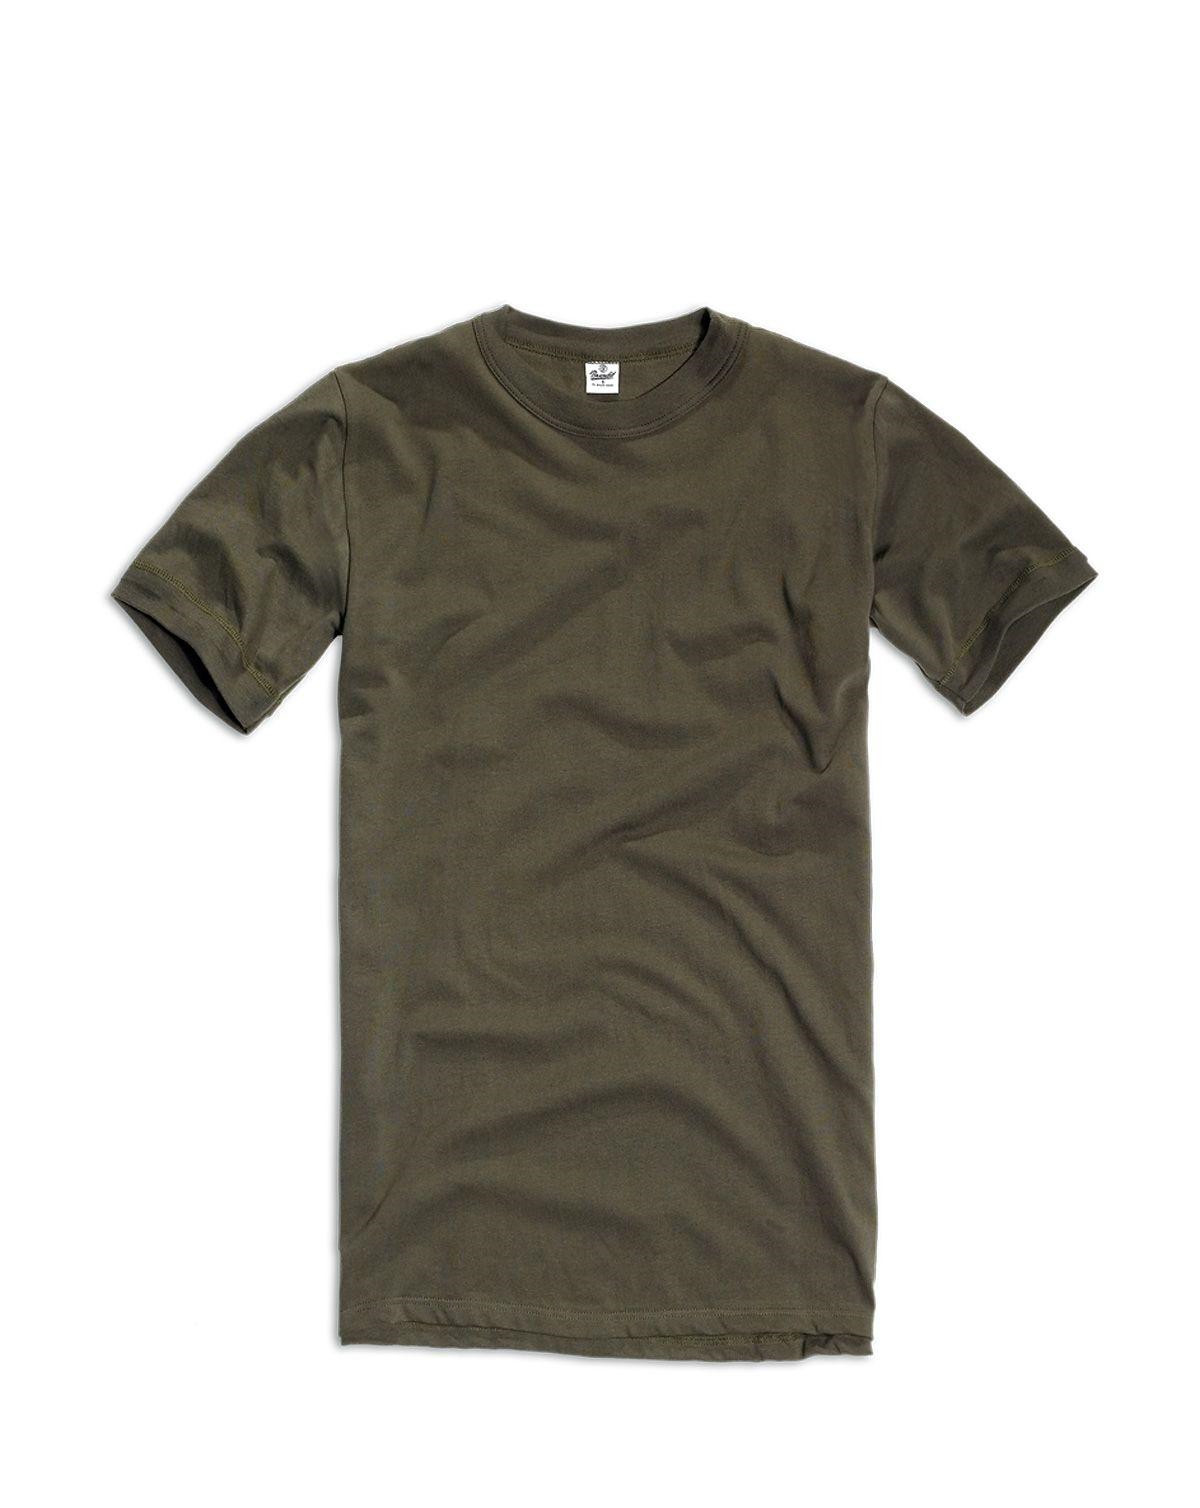 Image of   Brandit Army T-Shirt (Oliven, 2XL)